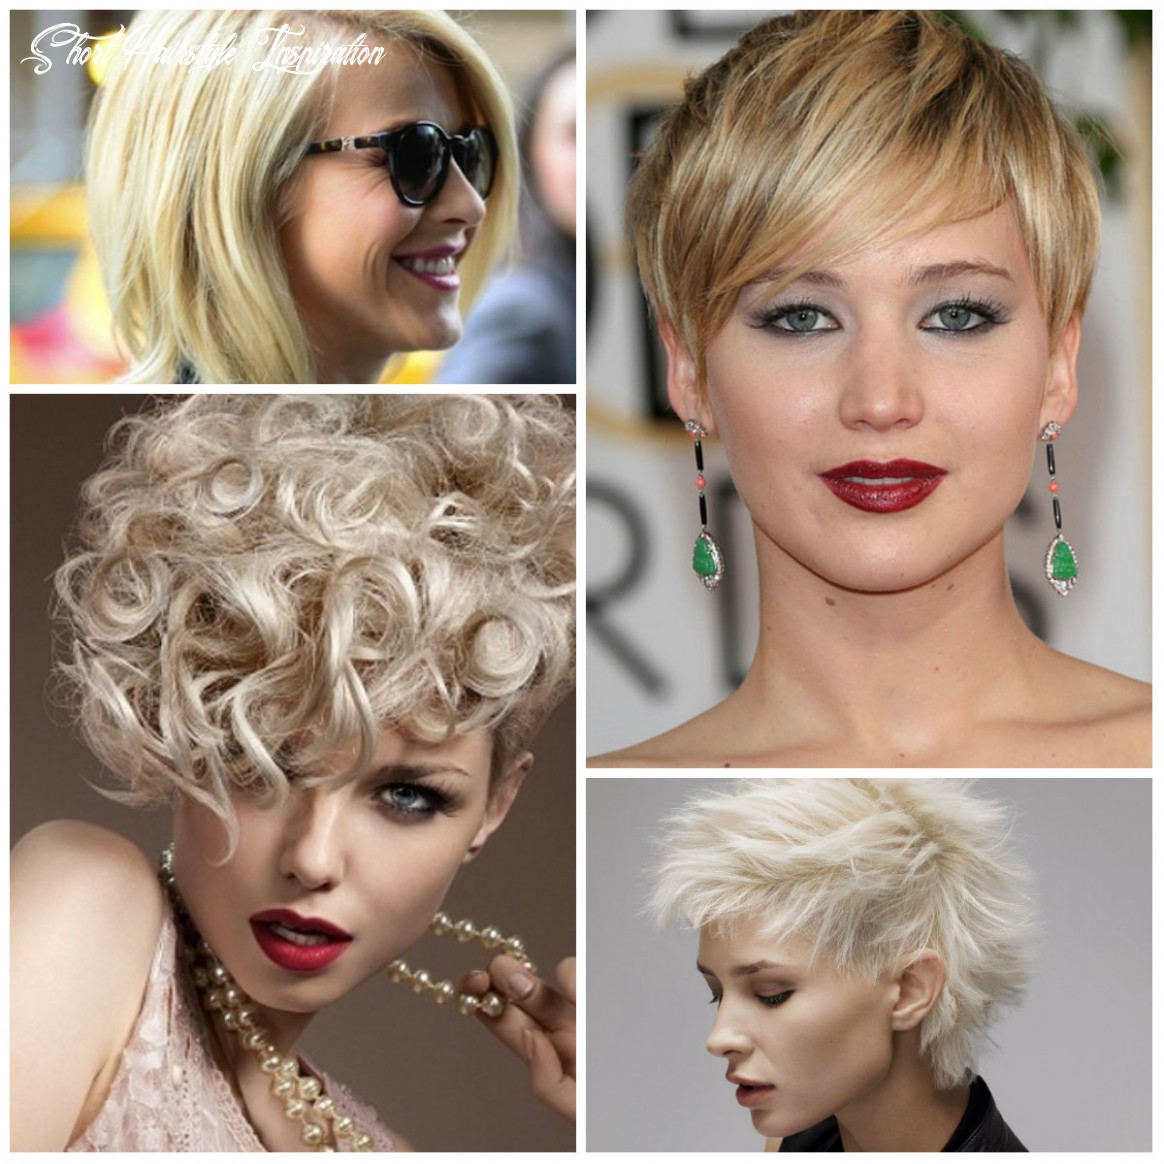 Short blonde hairstyle inspiration 8 hairstyleto short hairstyle inspiration